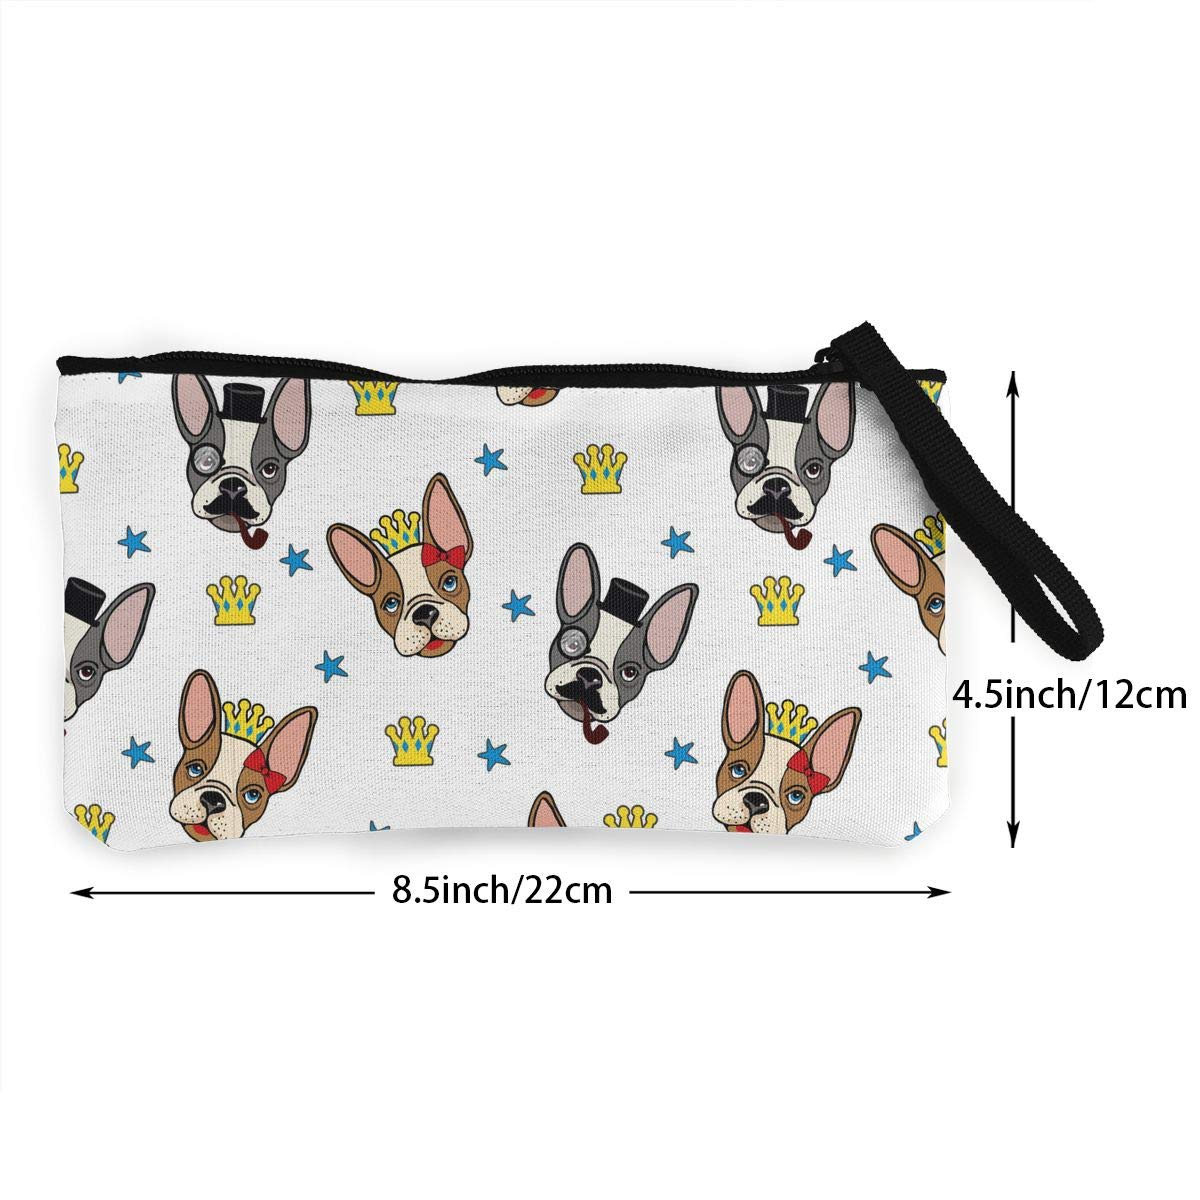 Cellphone Clutch Purse With Wrist Strap French Bulldog5 Pattern Zipper Small Purse Wallets Womens Canvas Coin Wallet